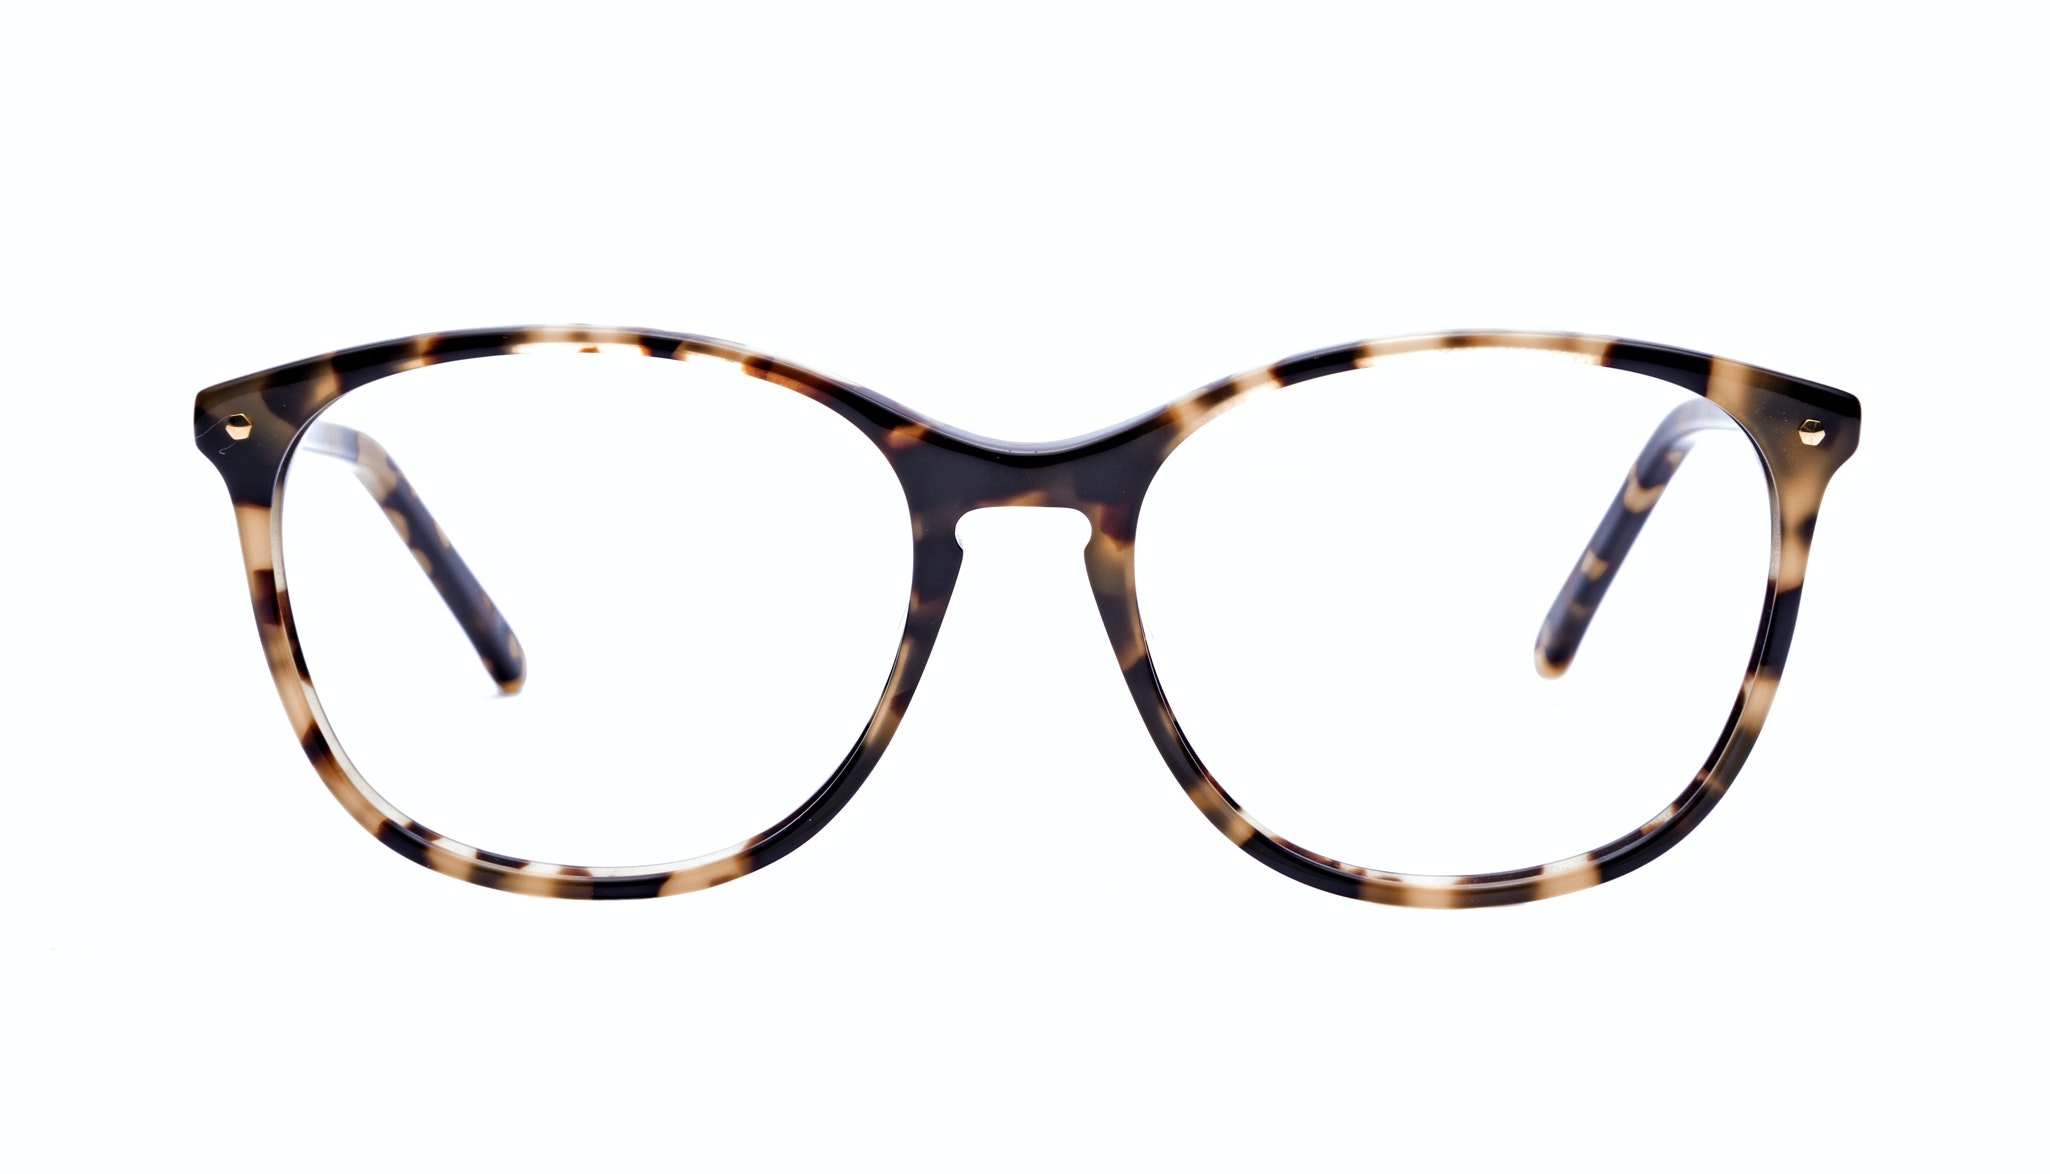 Affordable Fashion Glasses Rectangle Round Eyeglasses Women Nadine Bingal